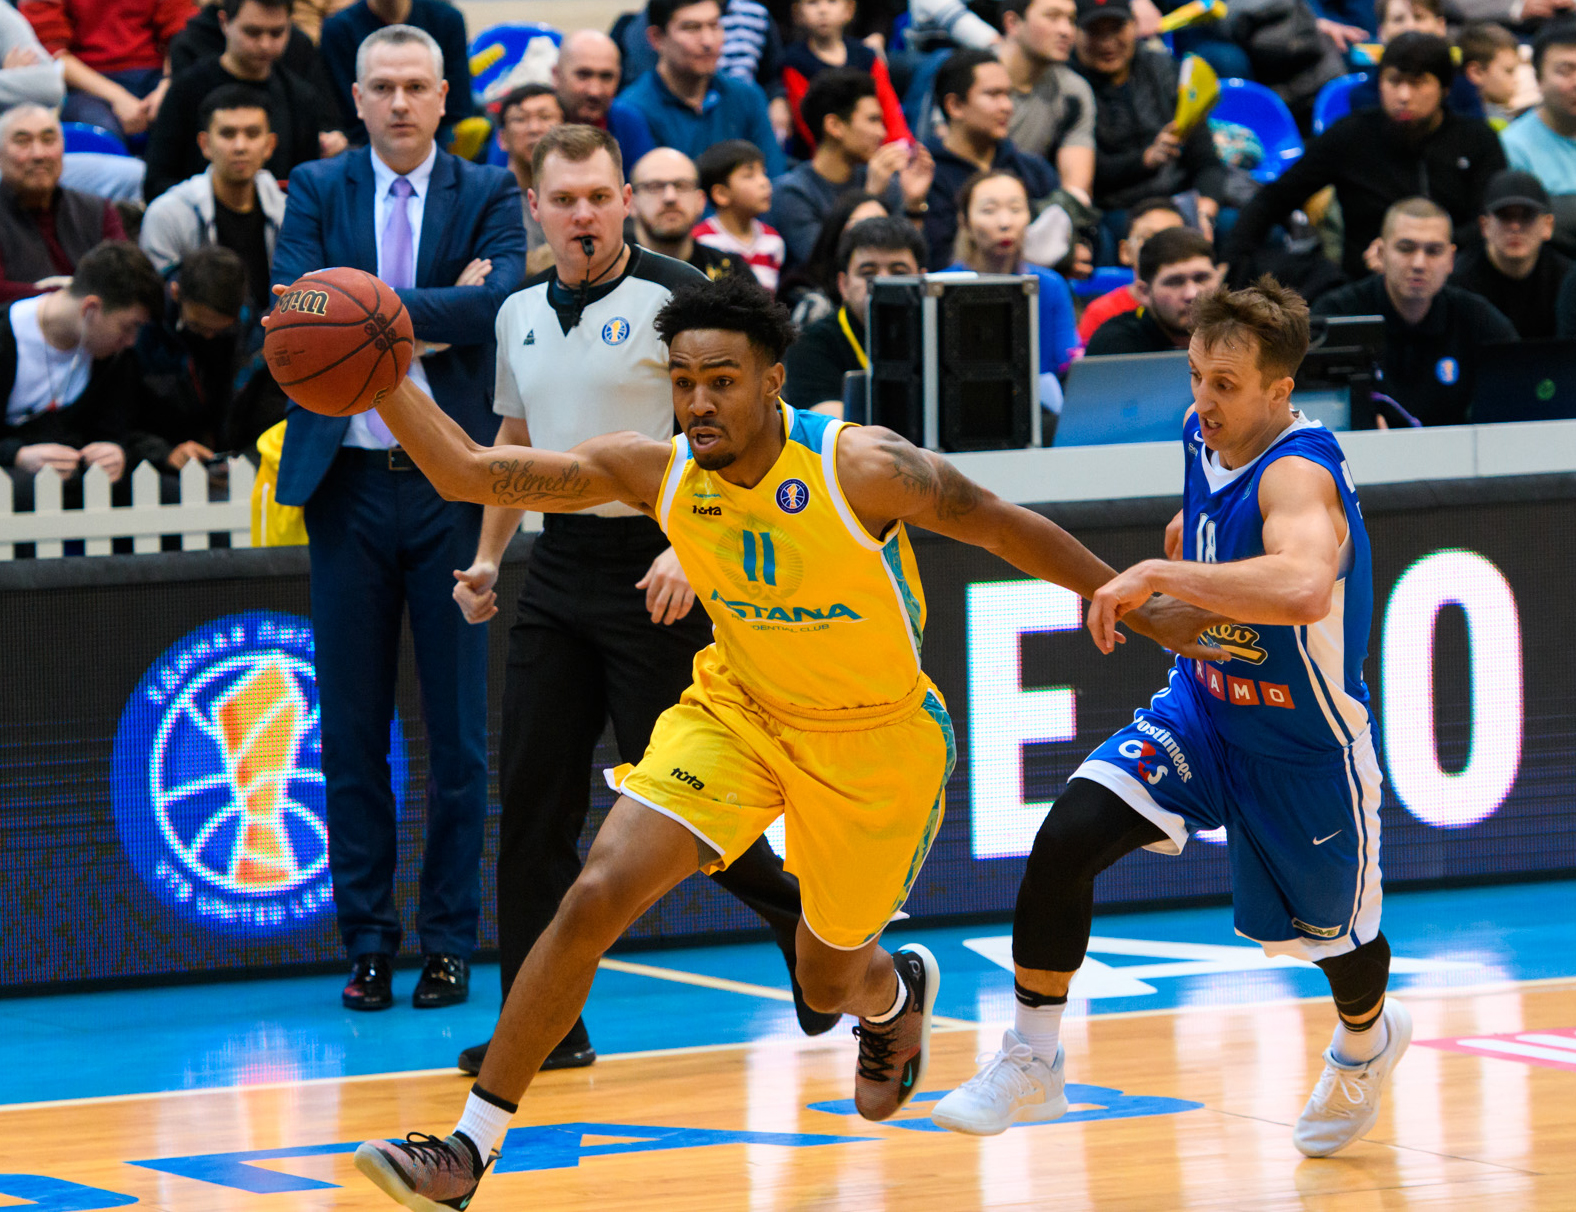 Astana Crushes Kalev For 6th Win